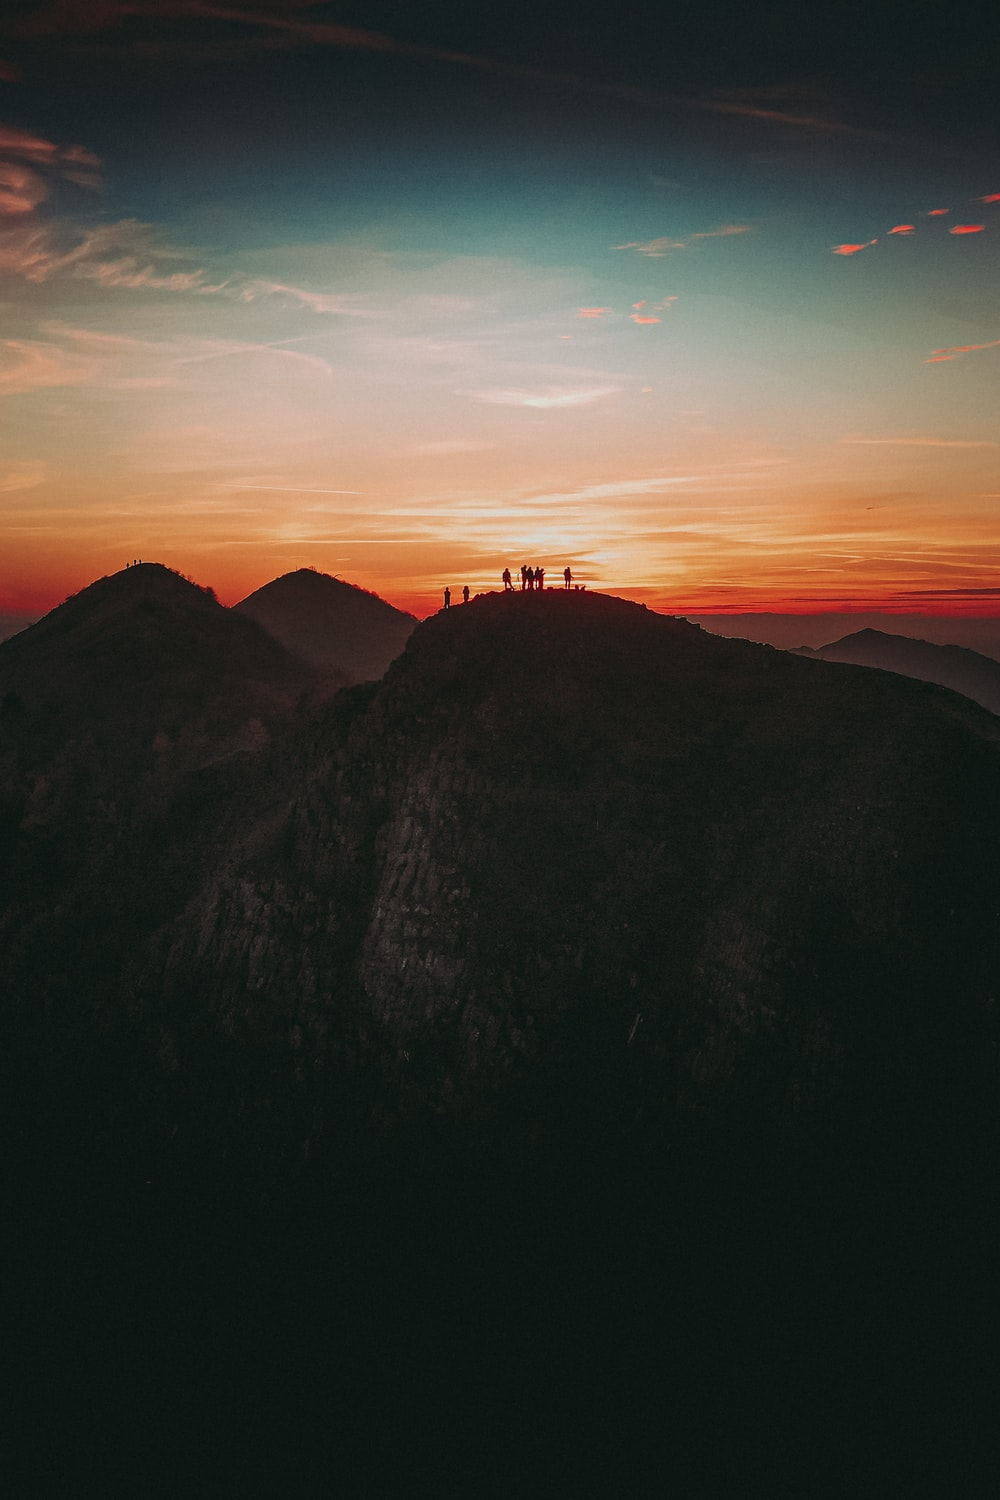 silhouette of people on top of mountain during sunset